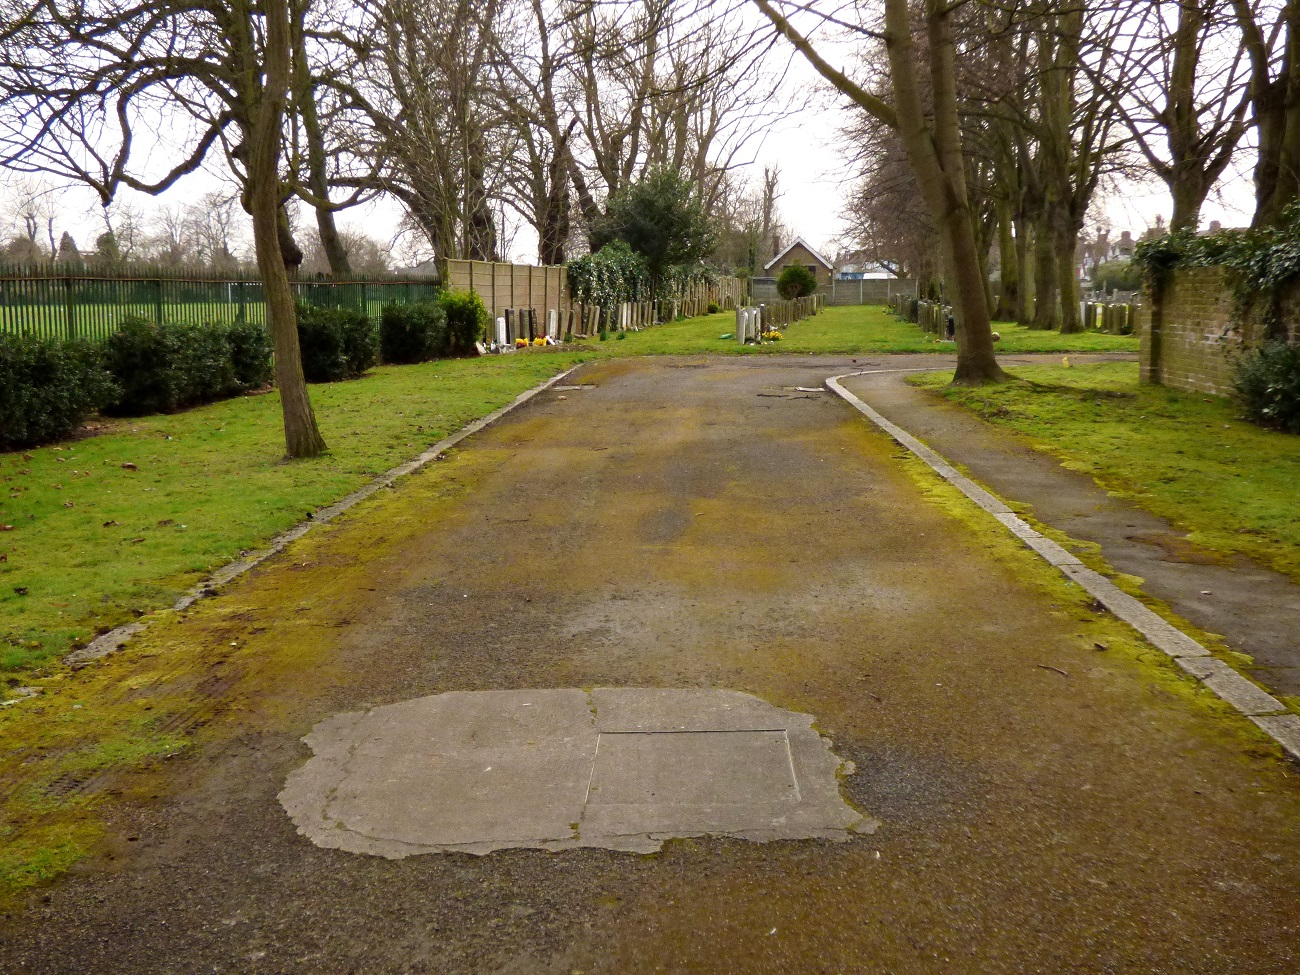 20170306_Redbridge_Barkingside-Cemetery_Entering-the-Graveyard